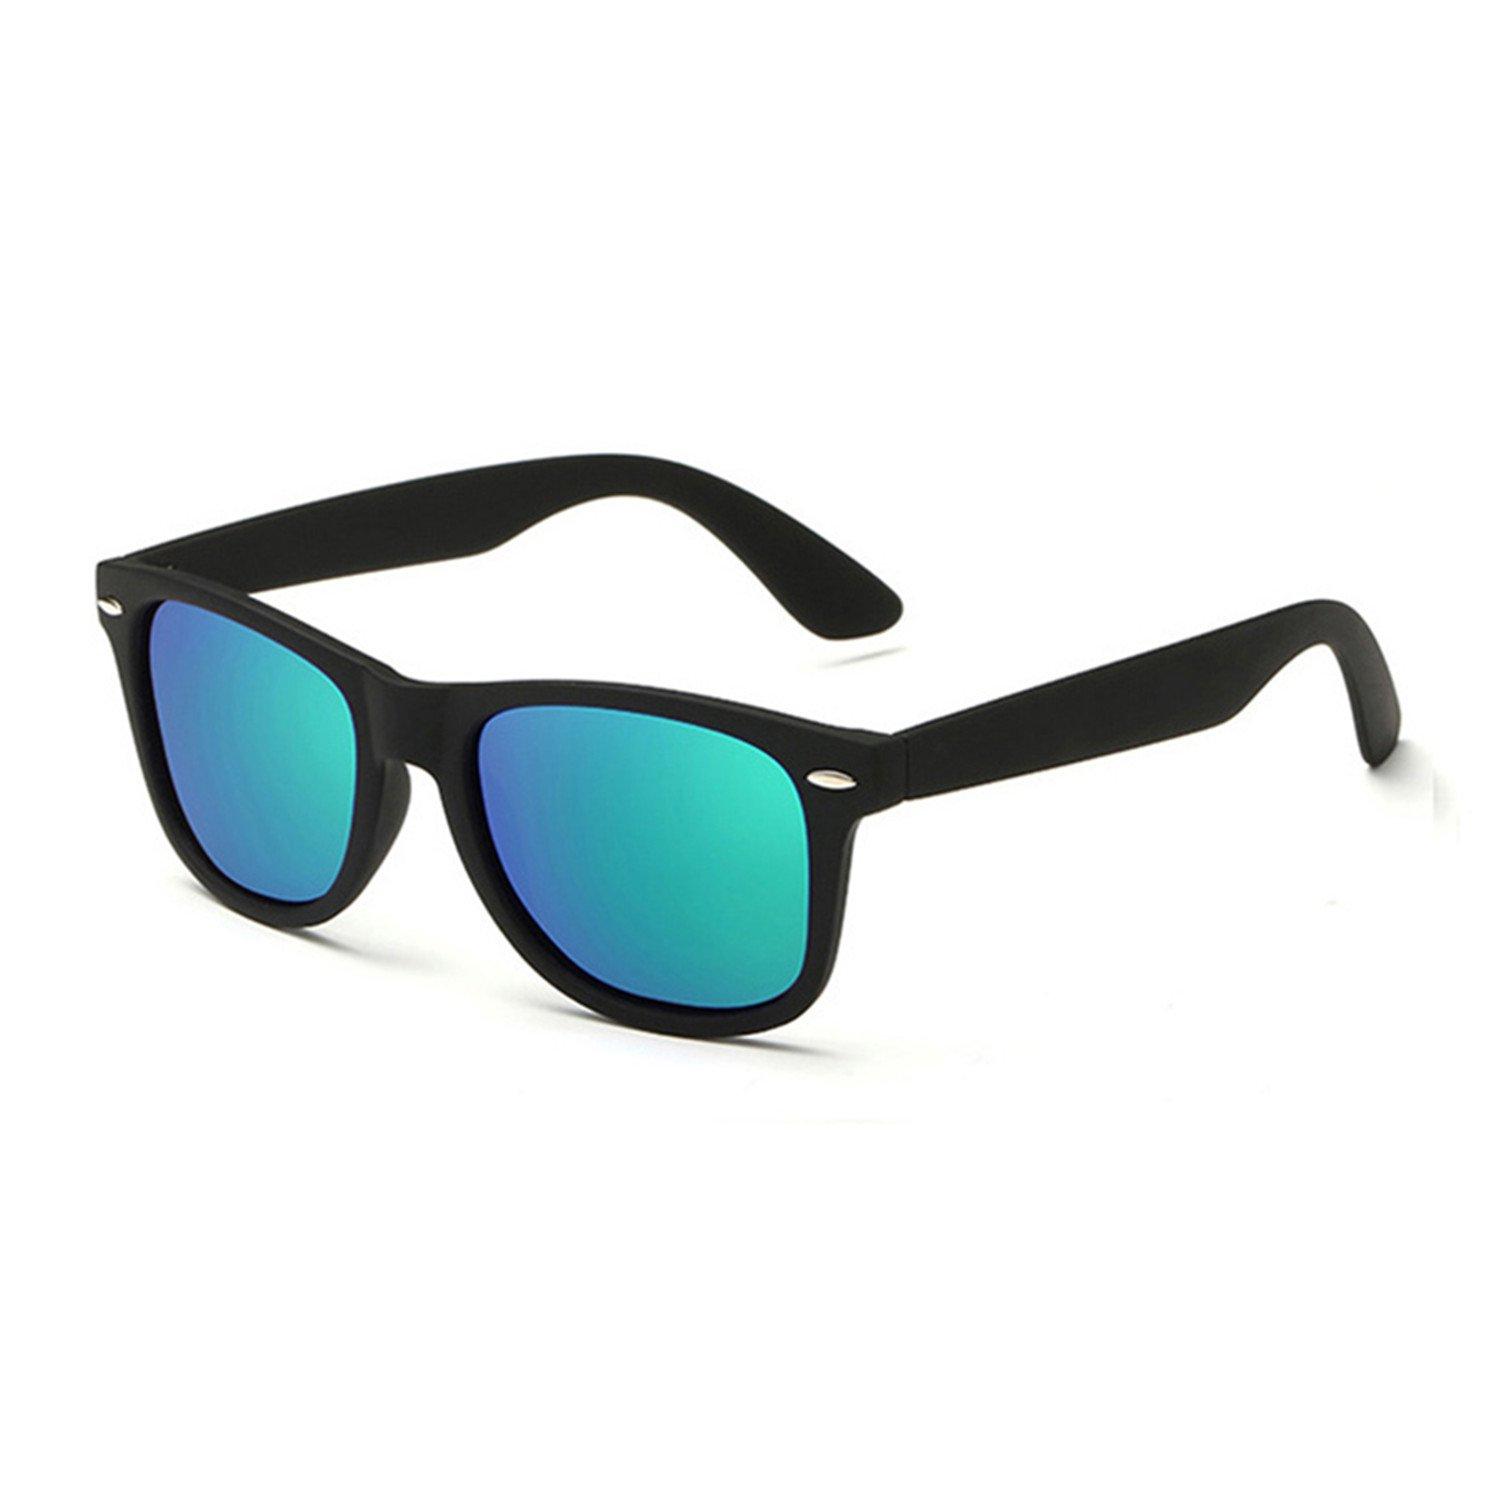 Amazon.com: Yaha see there Classic Sunglasses Men Women ...